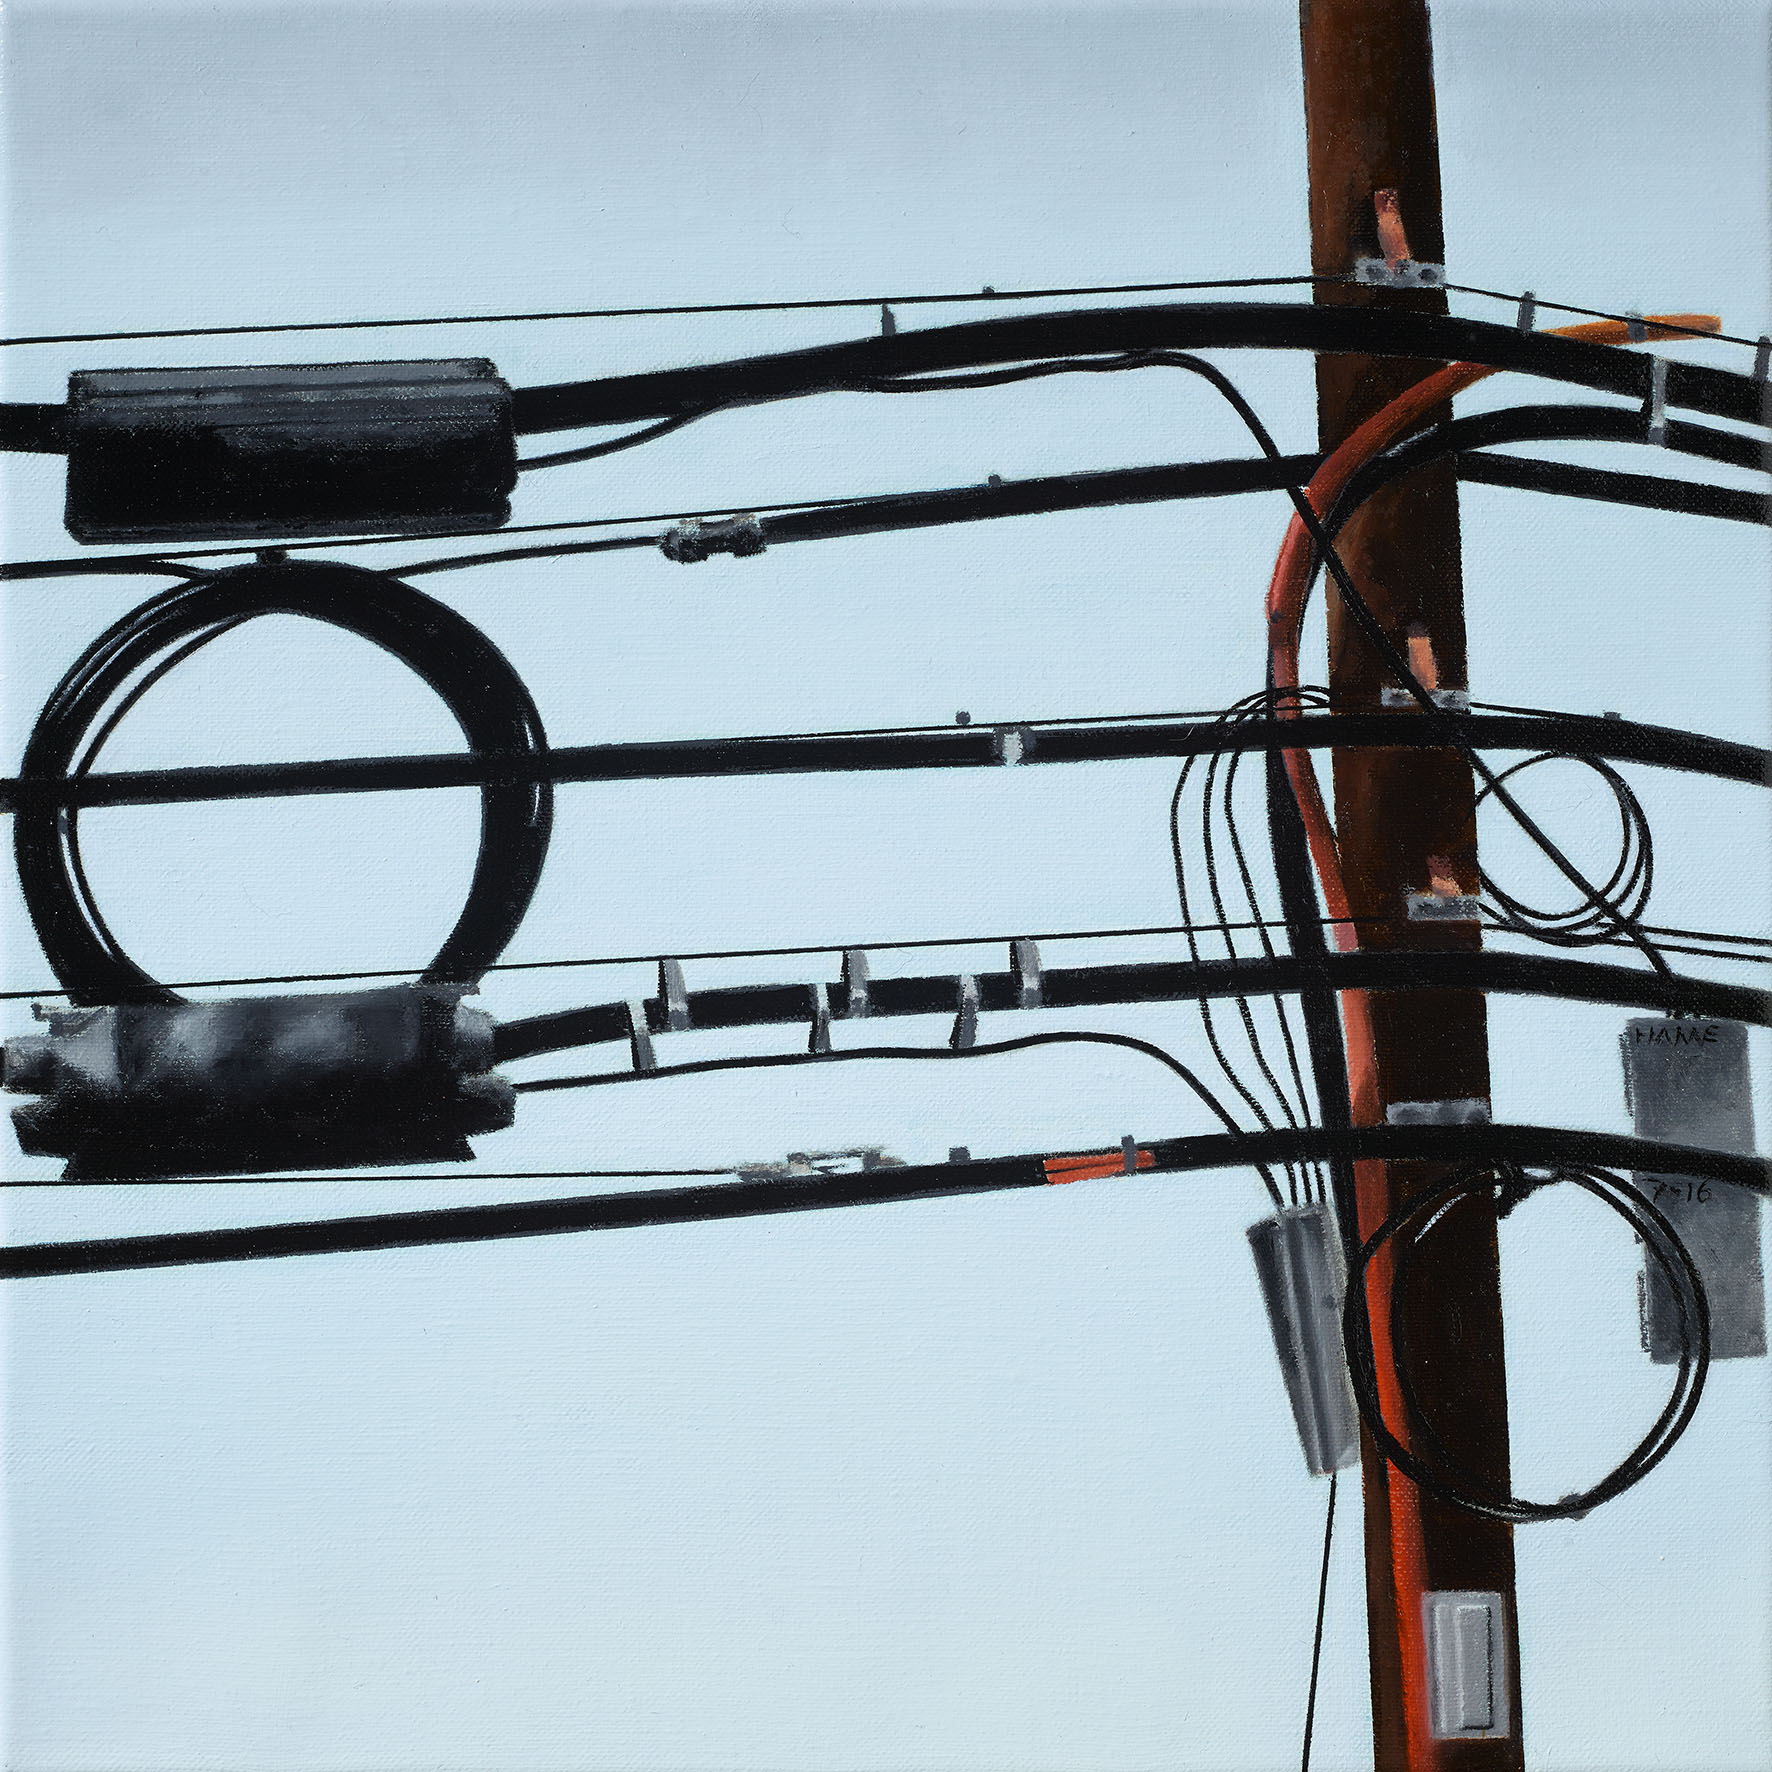 Wires -  Private Collection, Switzerland